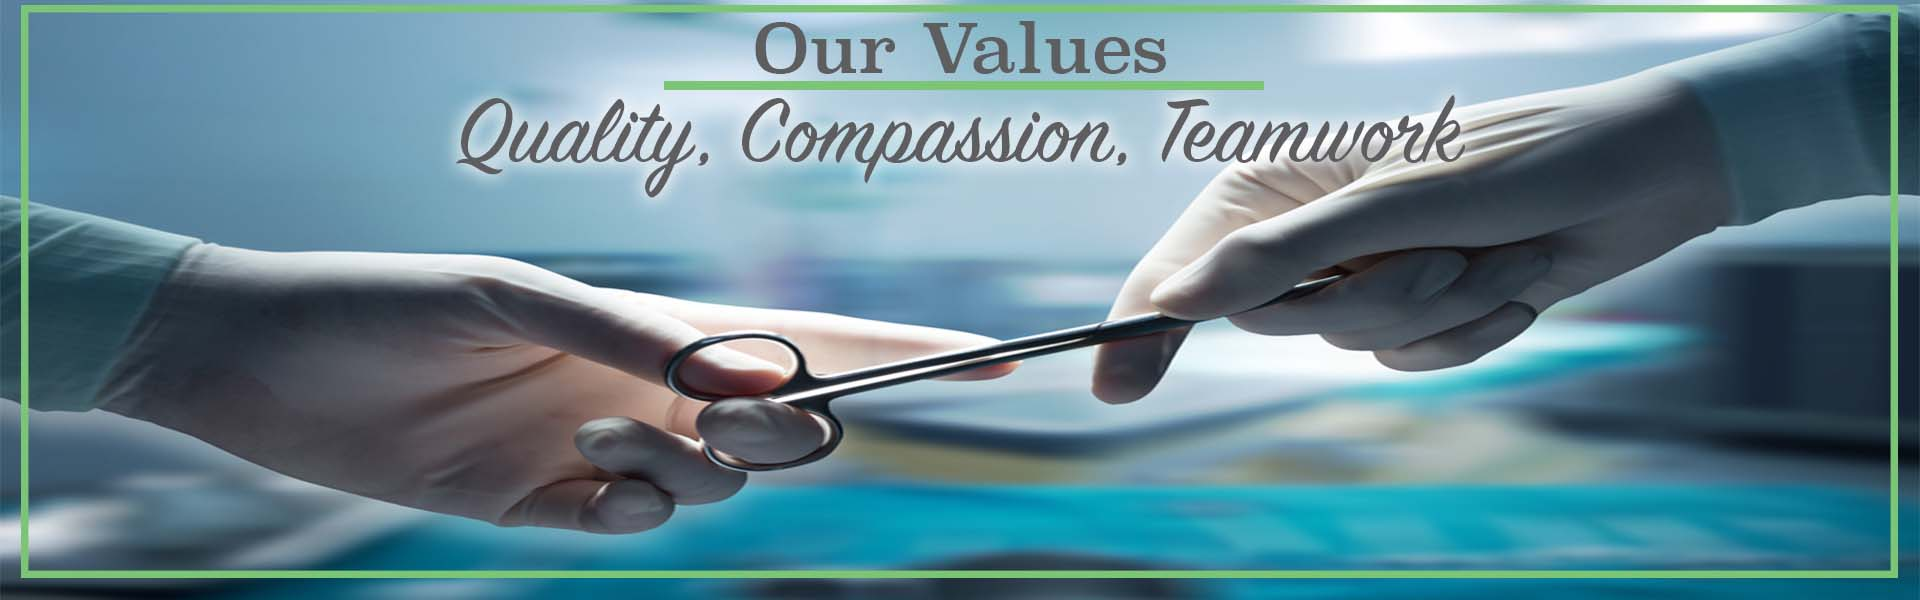 two hands with surgical equipment, our values, quality, compassion, teamwork